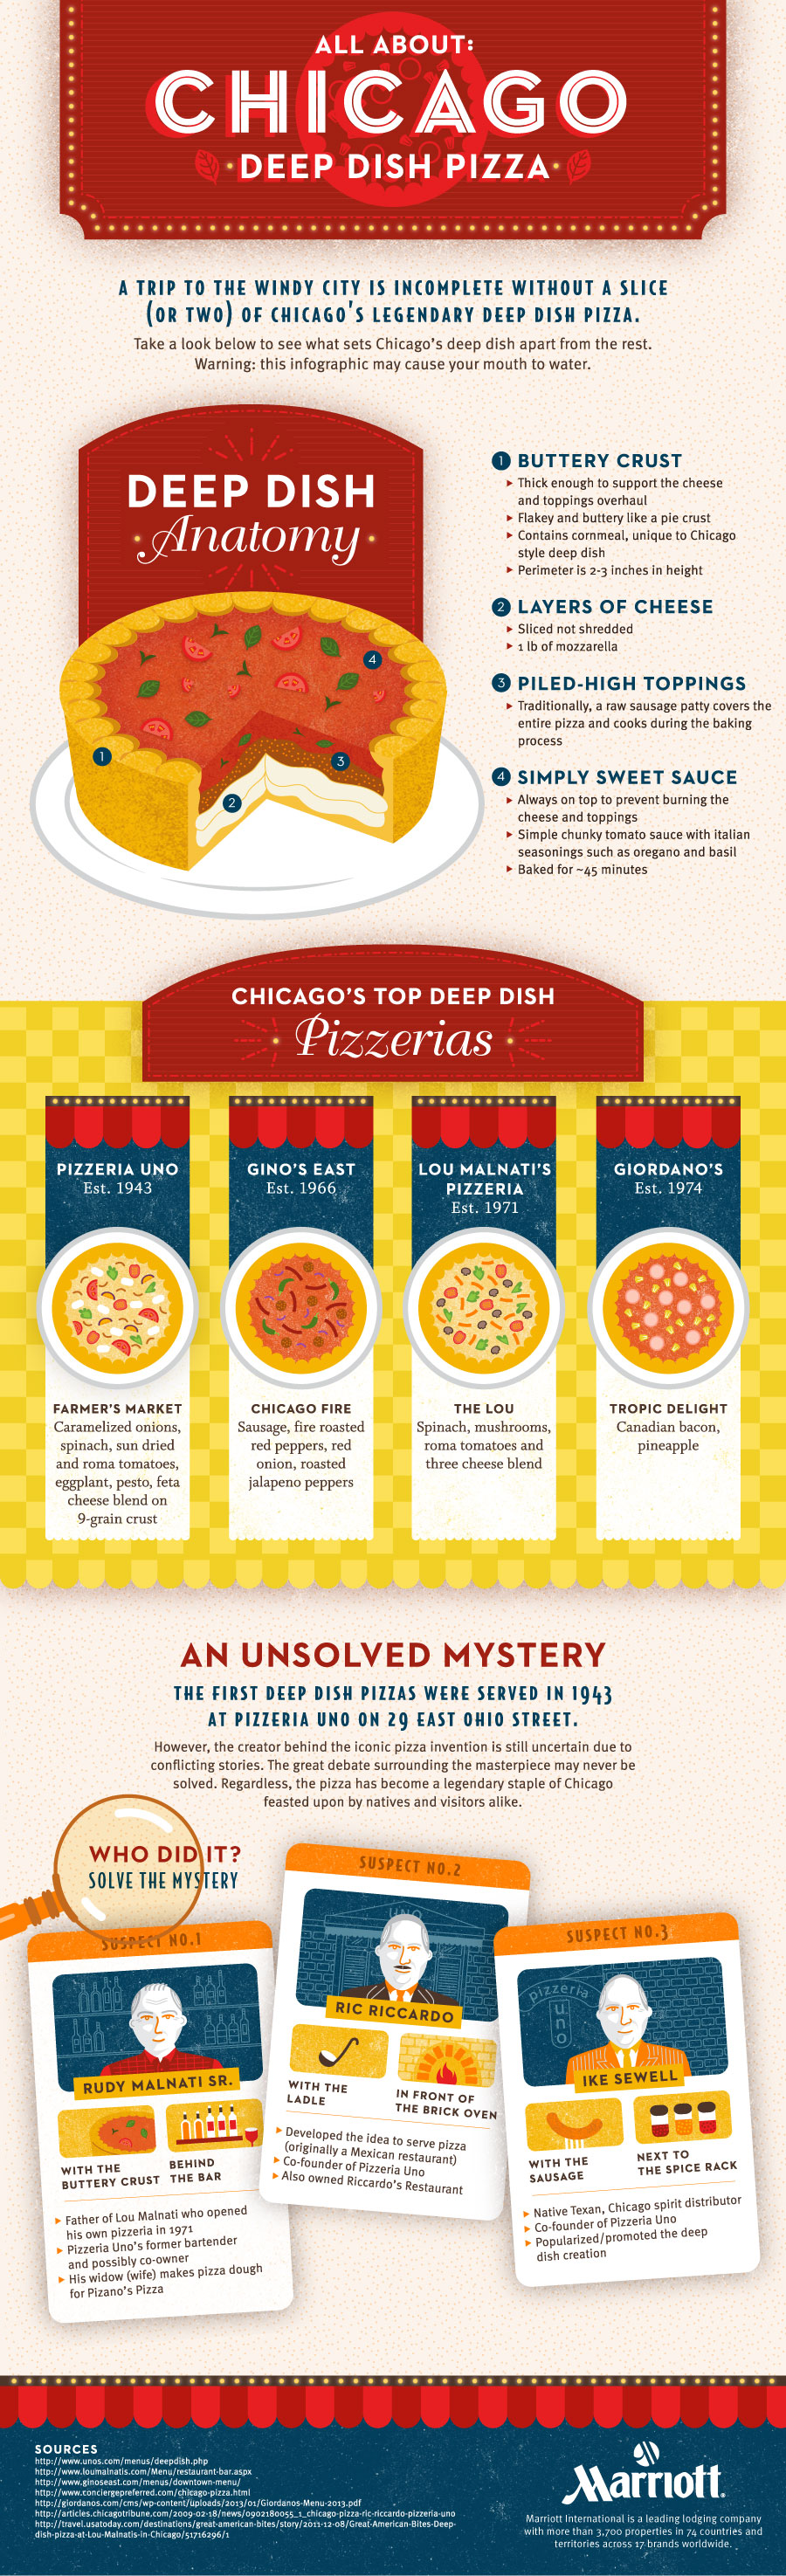 Chicago Deep Dish Pizza | Best Food Infographics